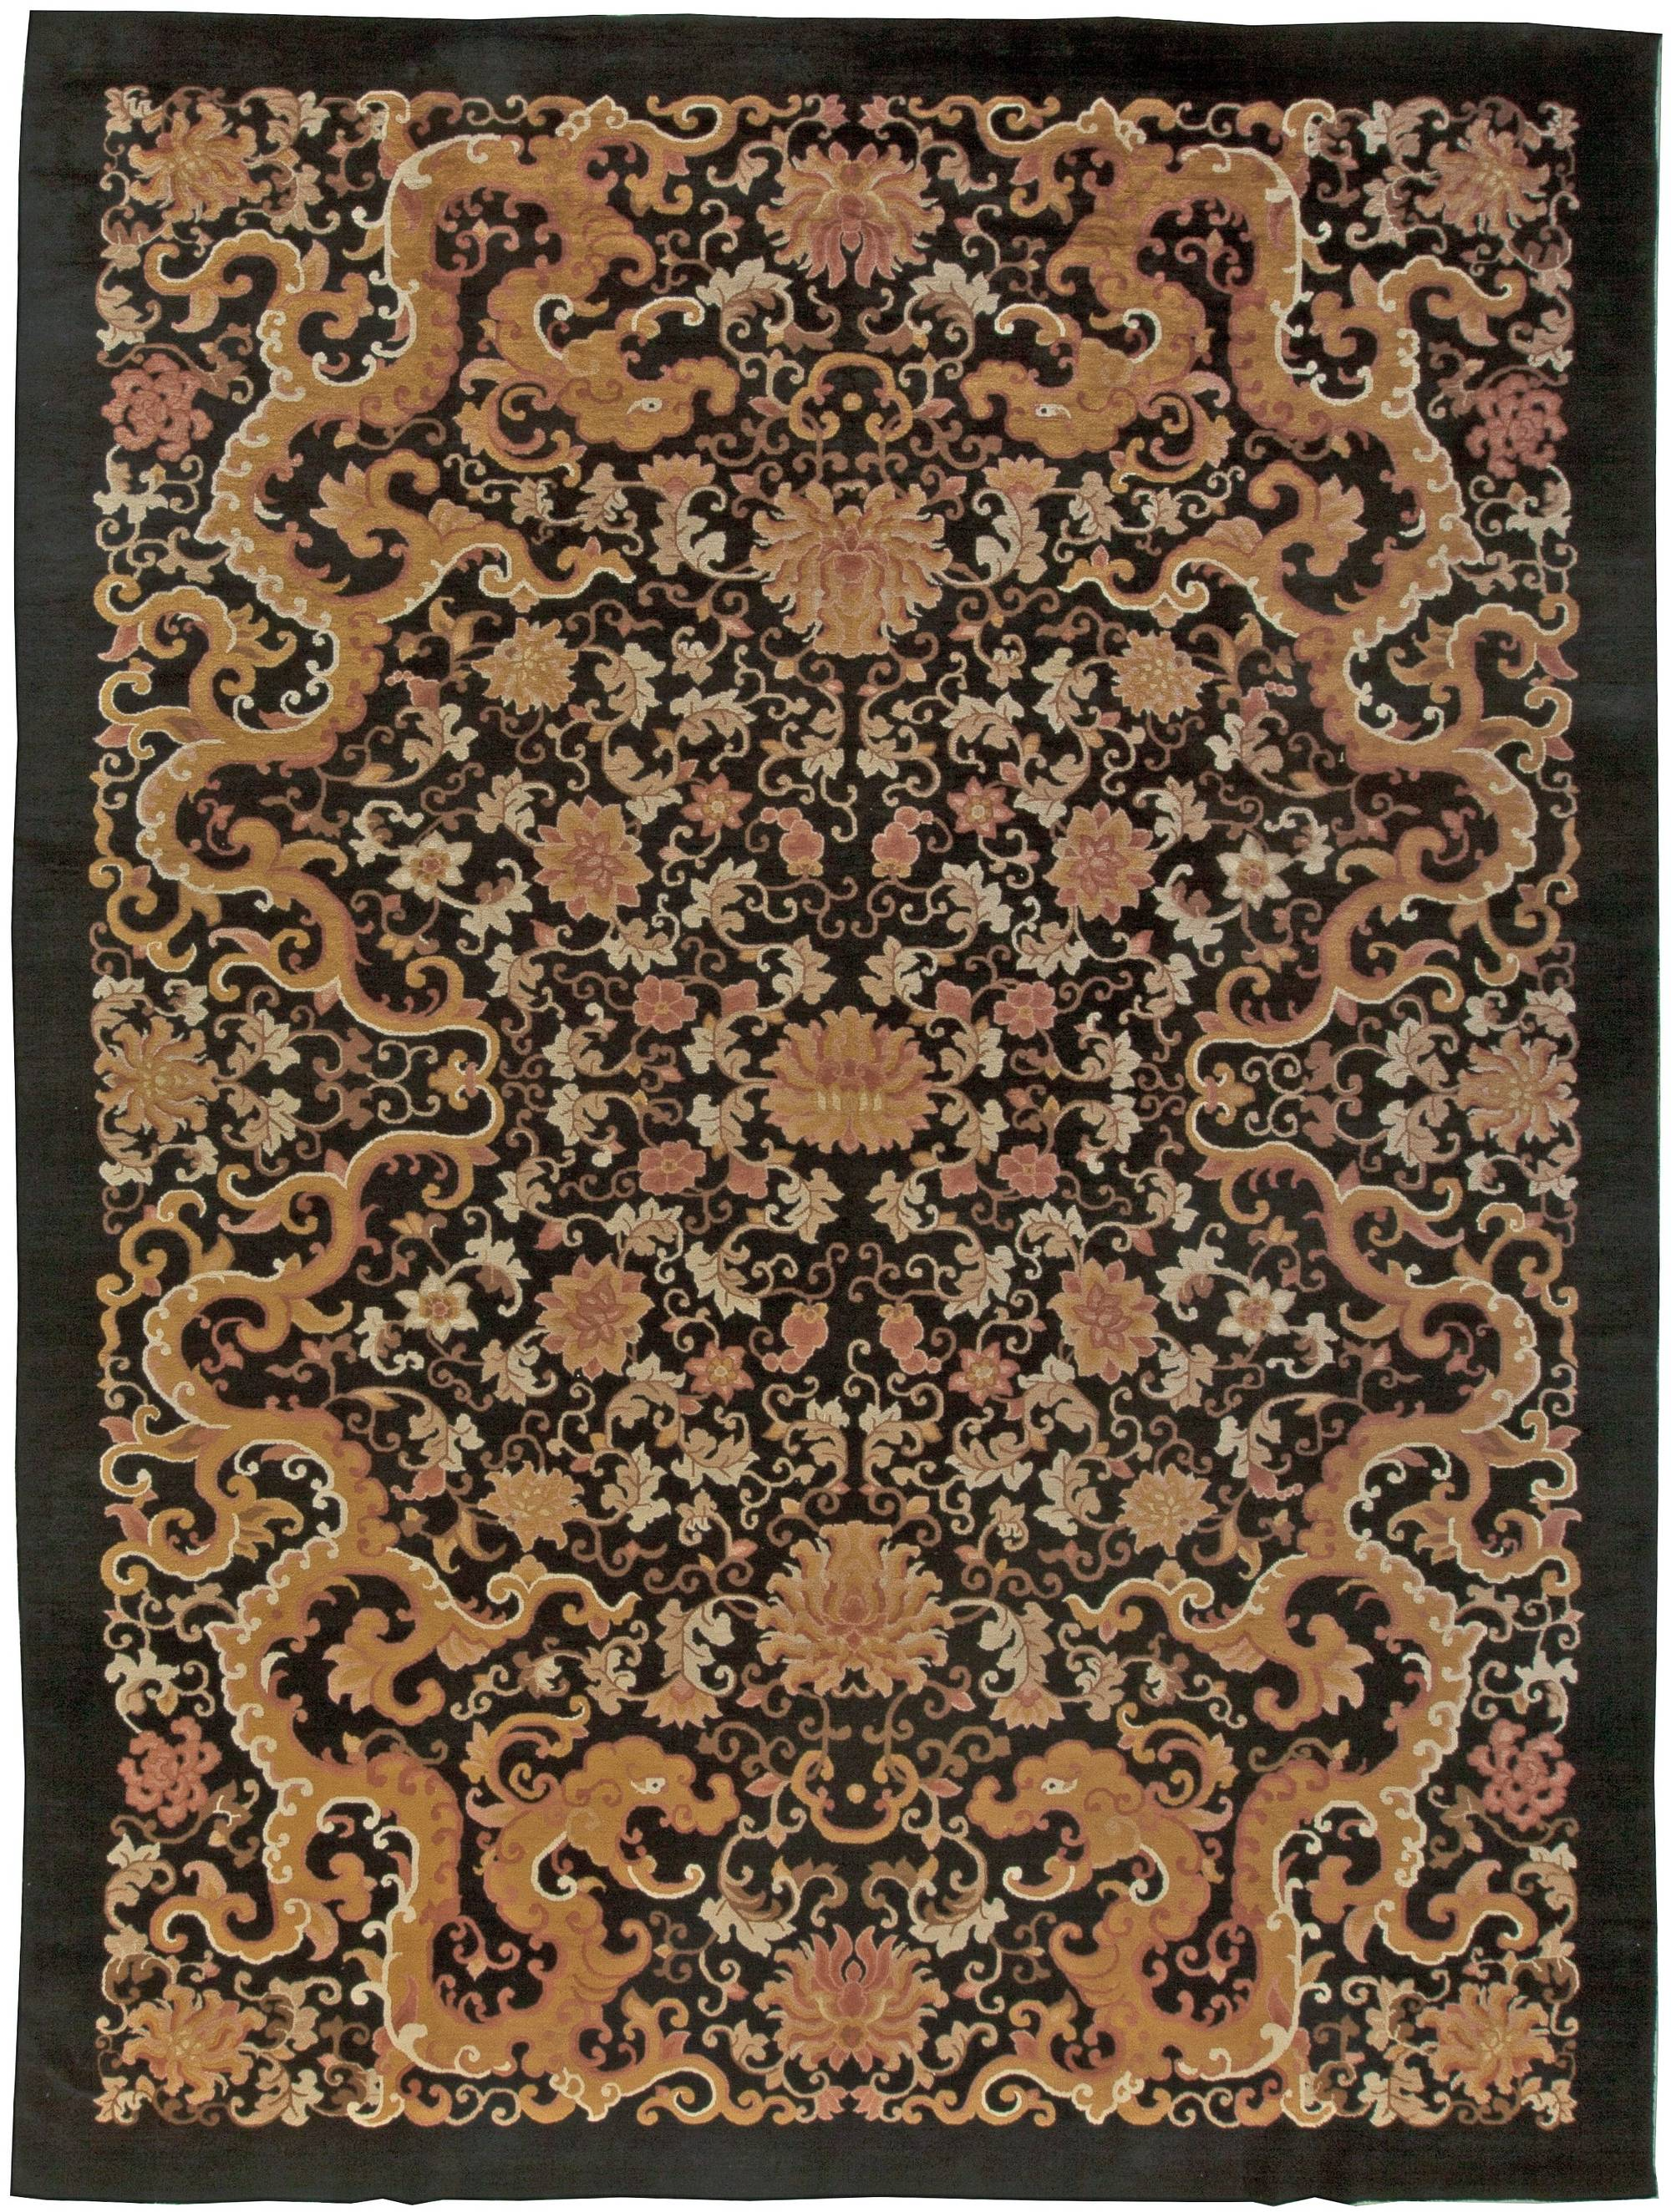 Chinese Rugs Amp Carpets For Sale Antique Oriental Art Deco